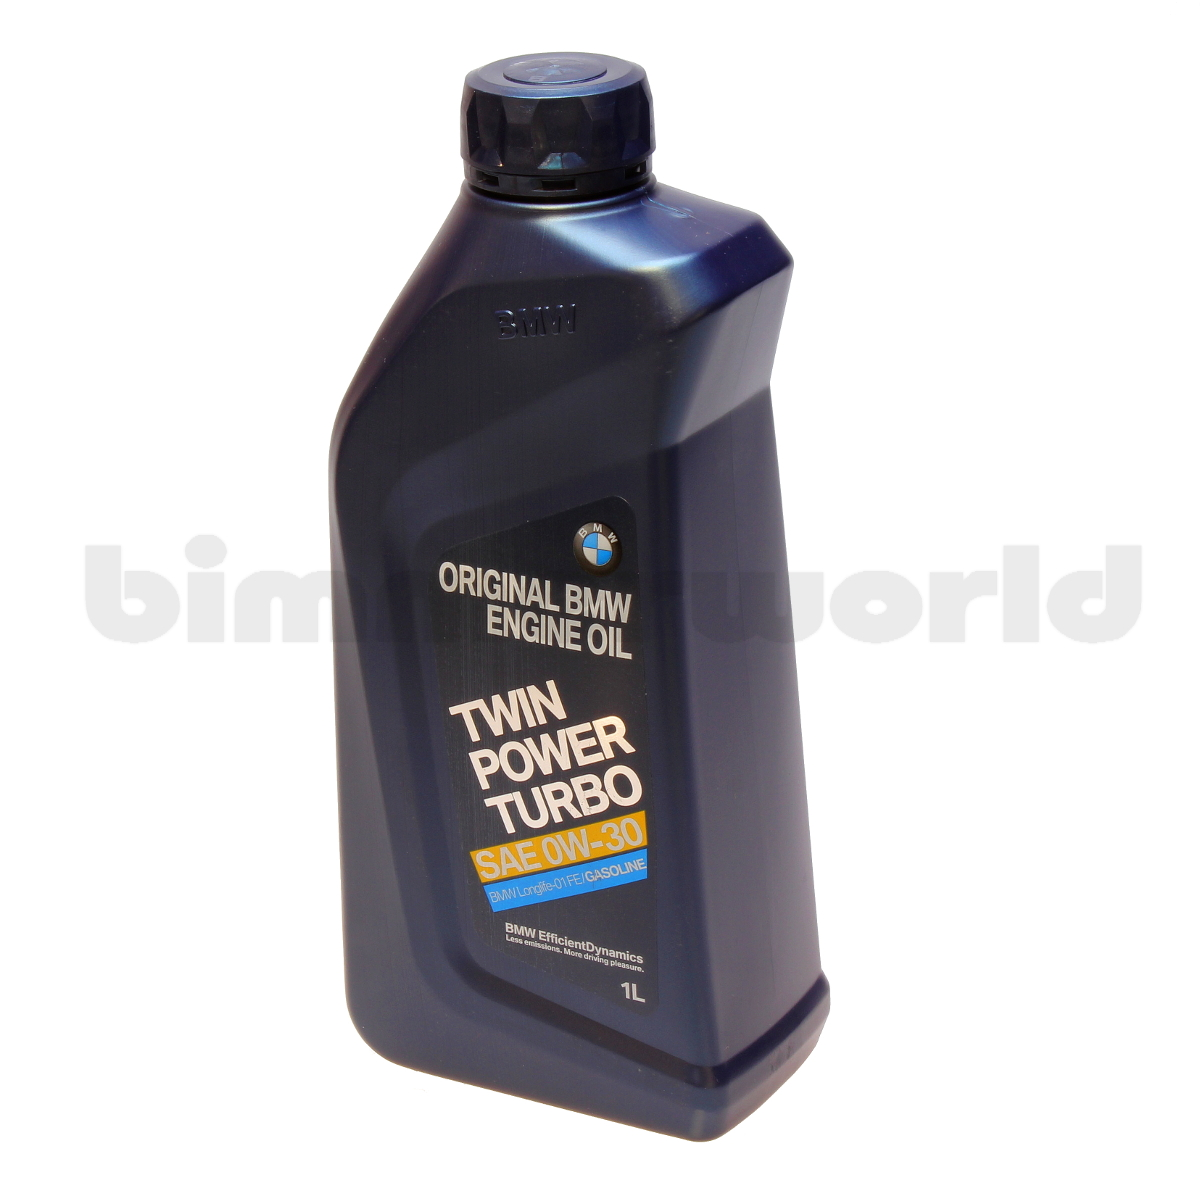 0w30 bmw twinpower turbo oil for Best motor oil in the world